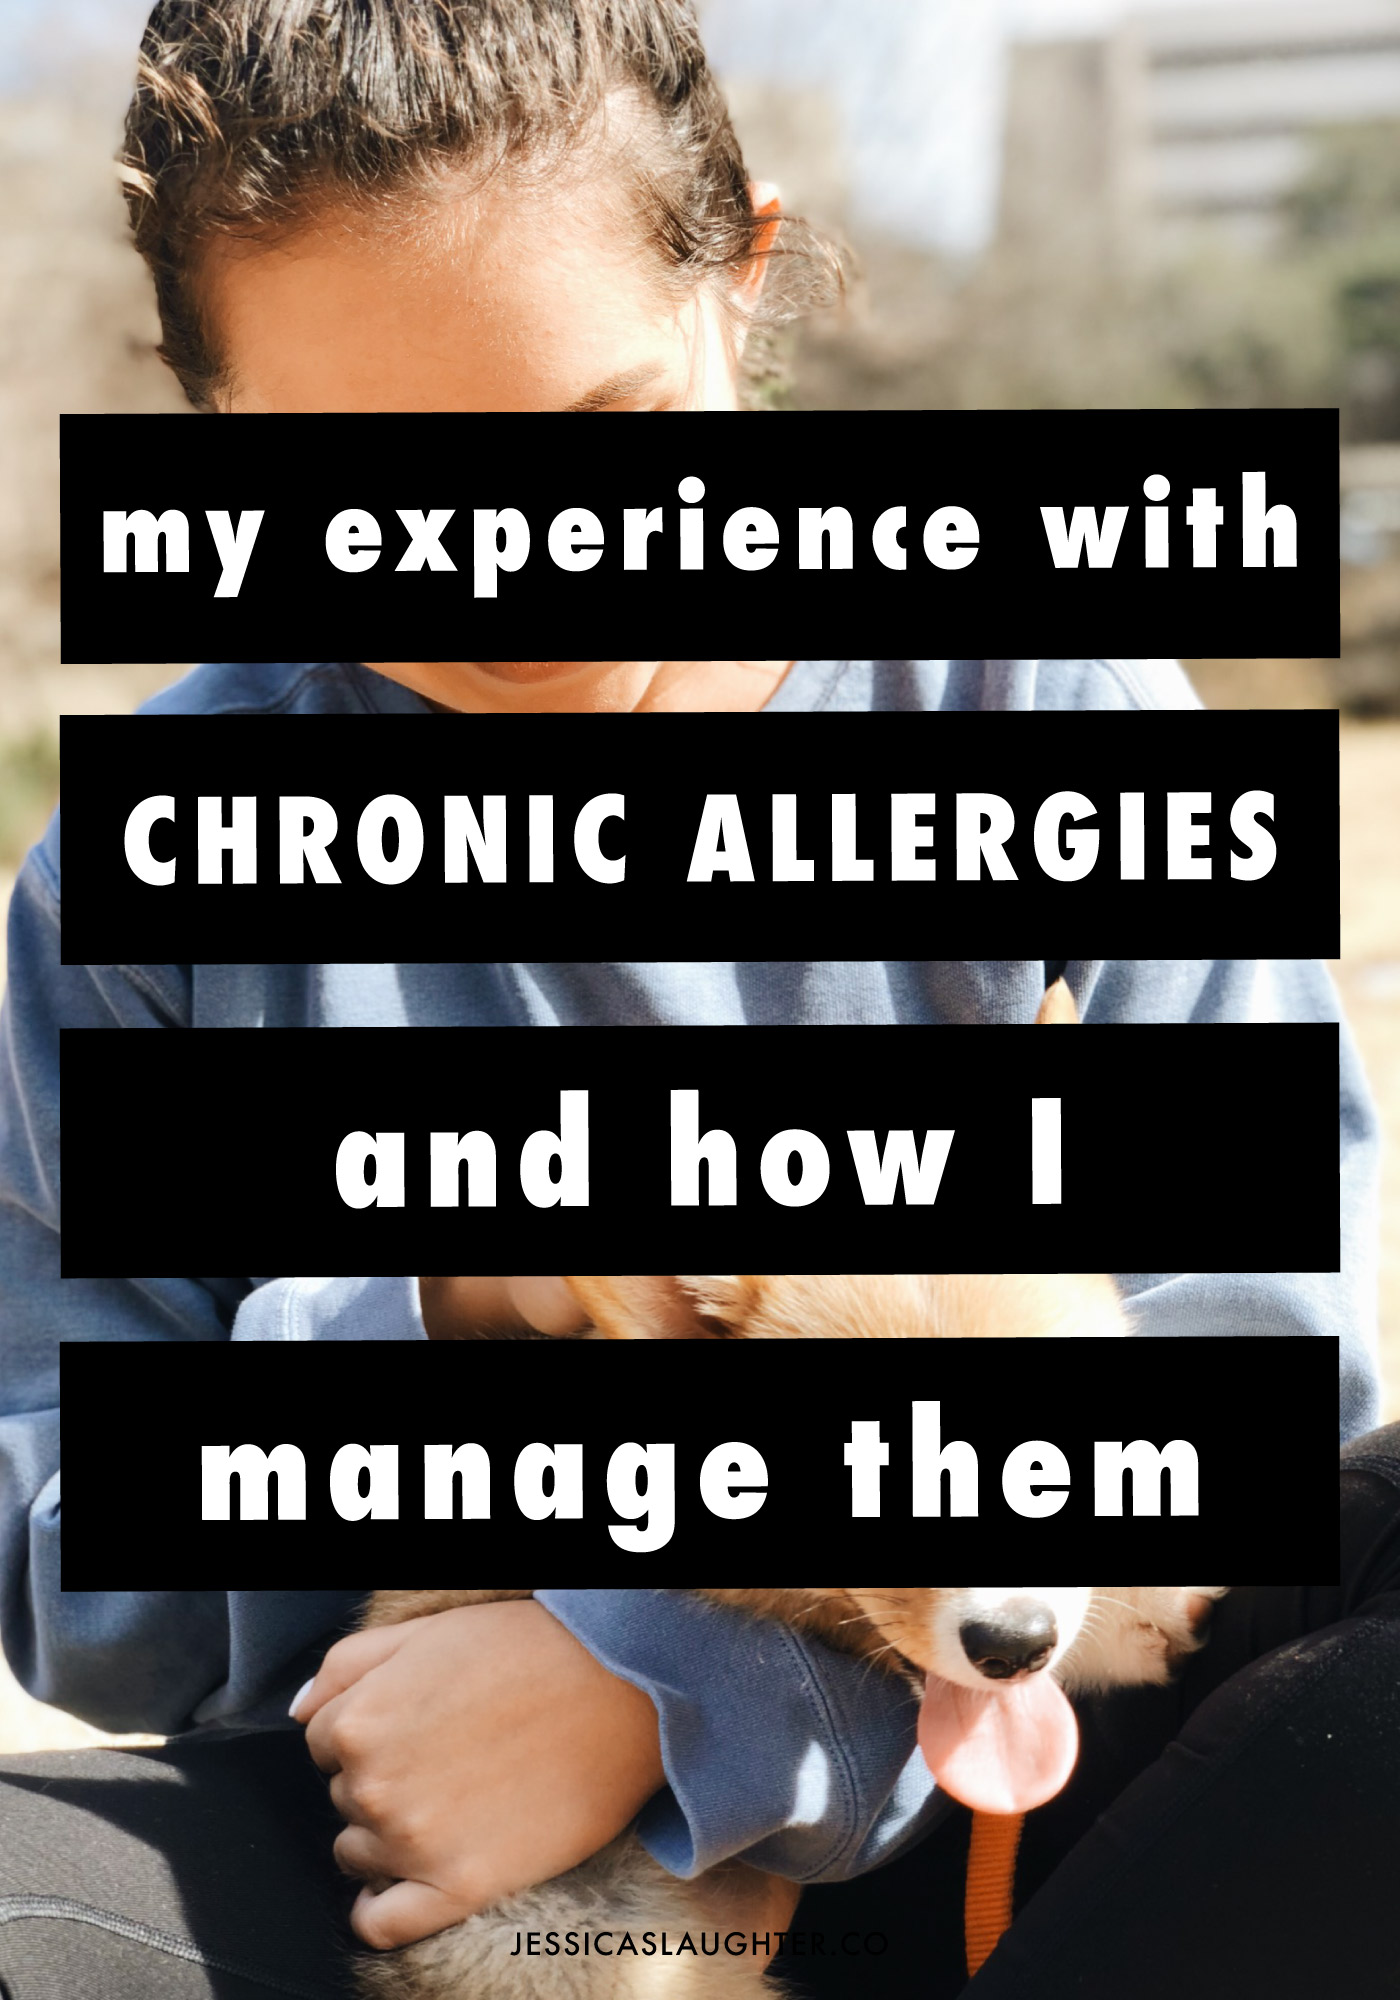 My experience with chronic allergies and how I manage them